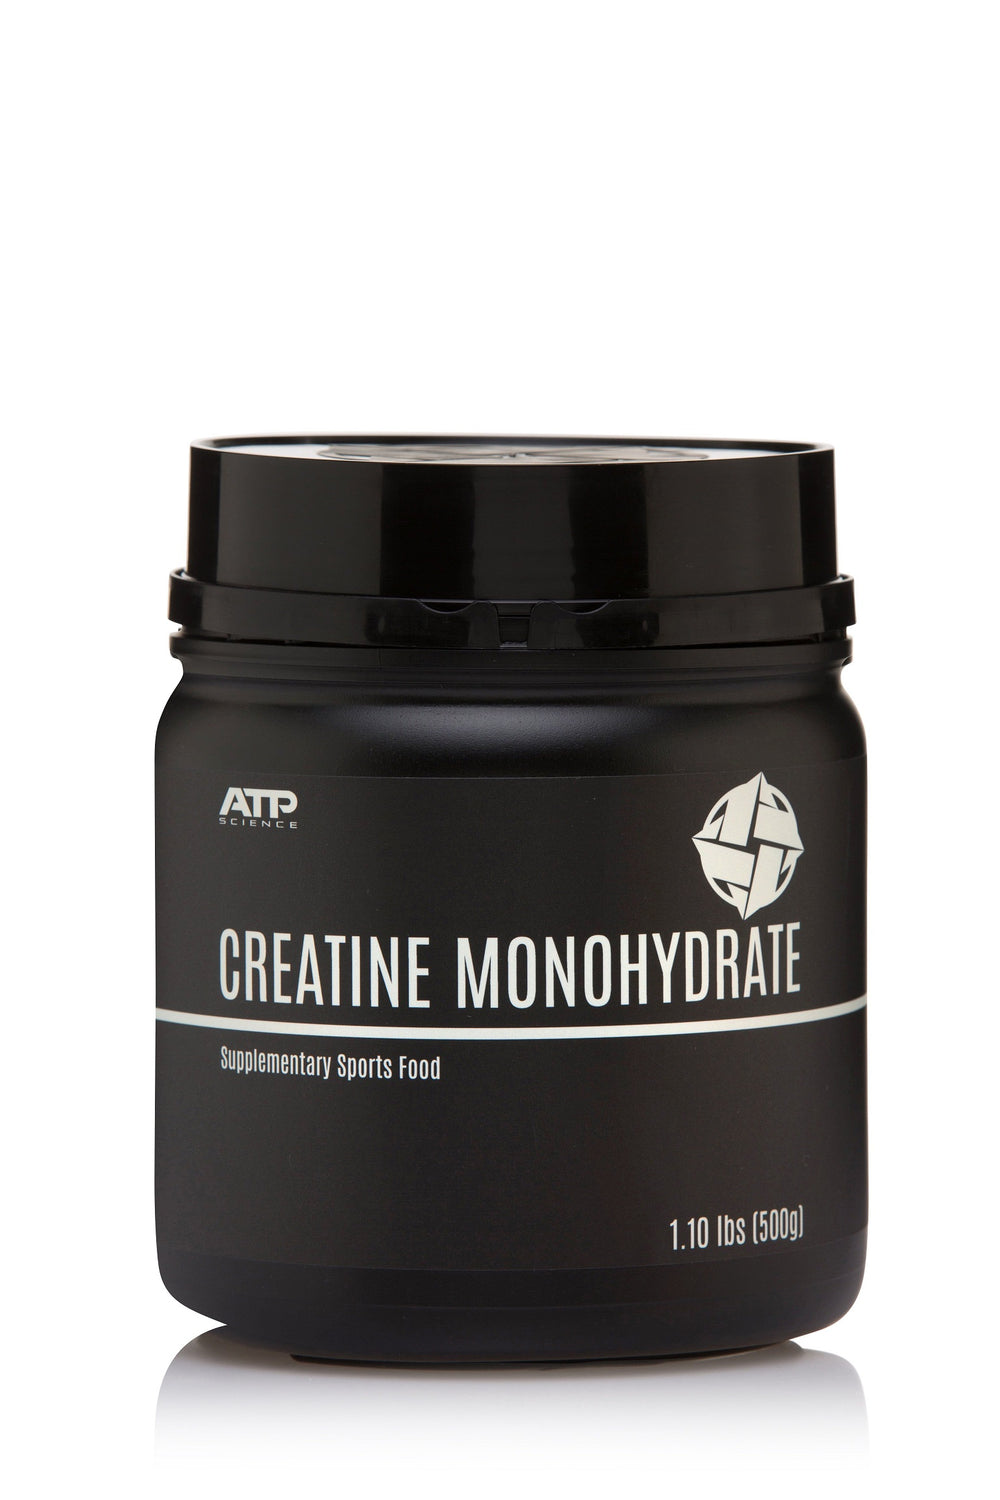 ATP Creatine Monohydrate - Super Nutrition